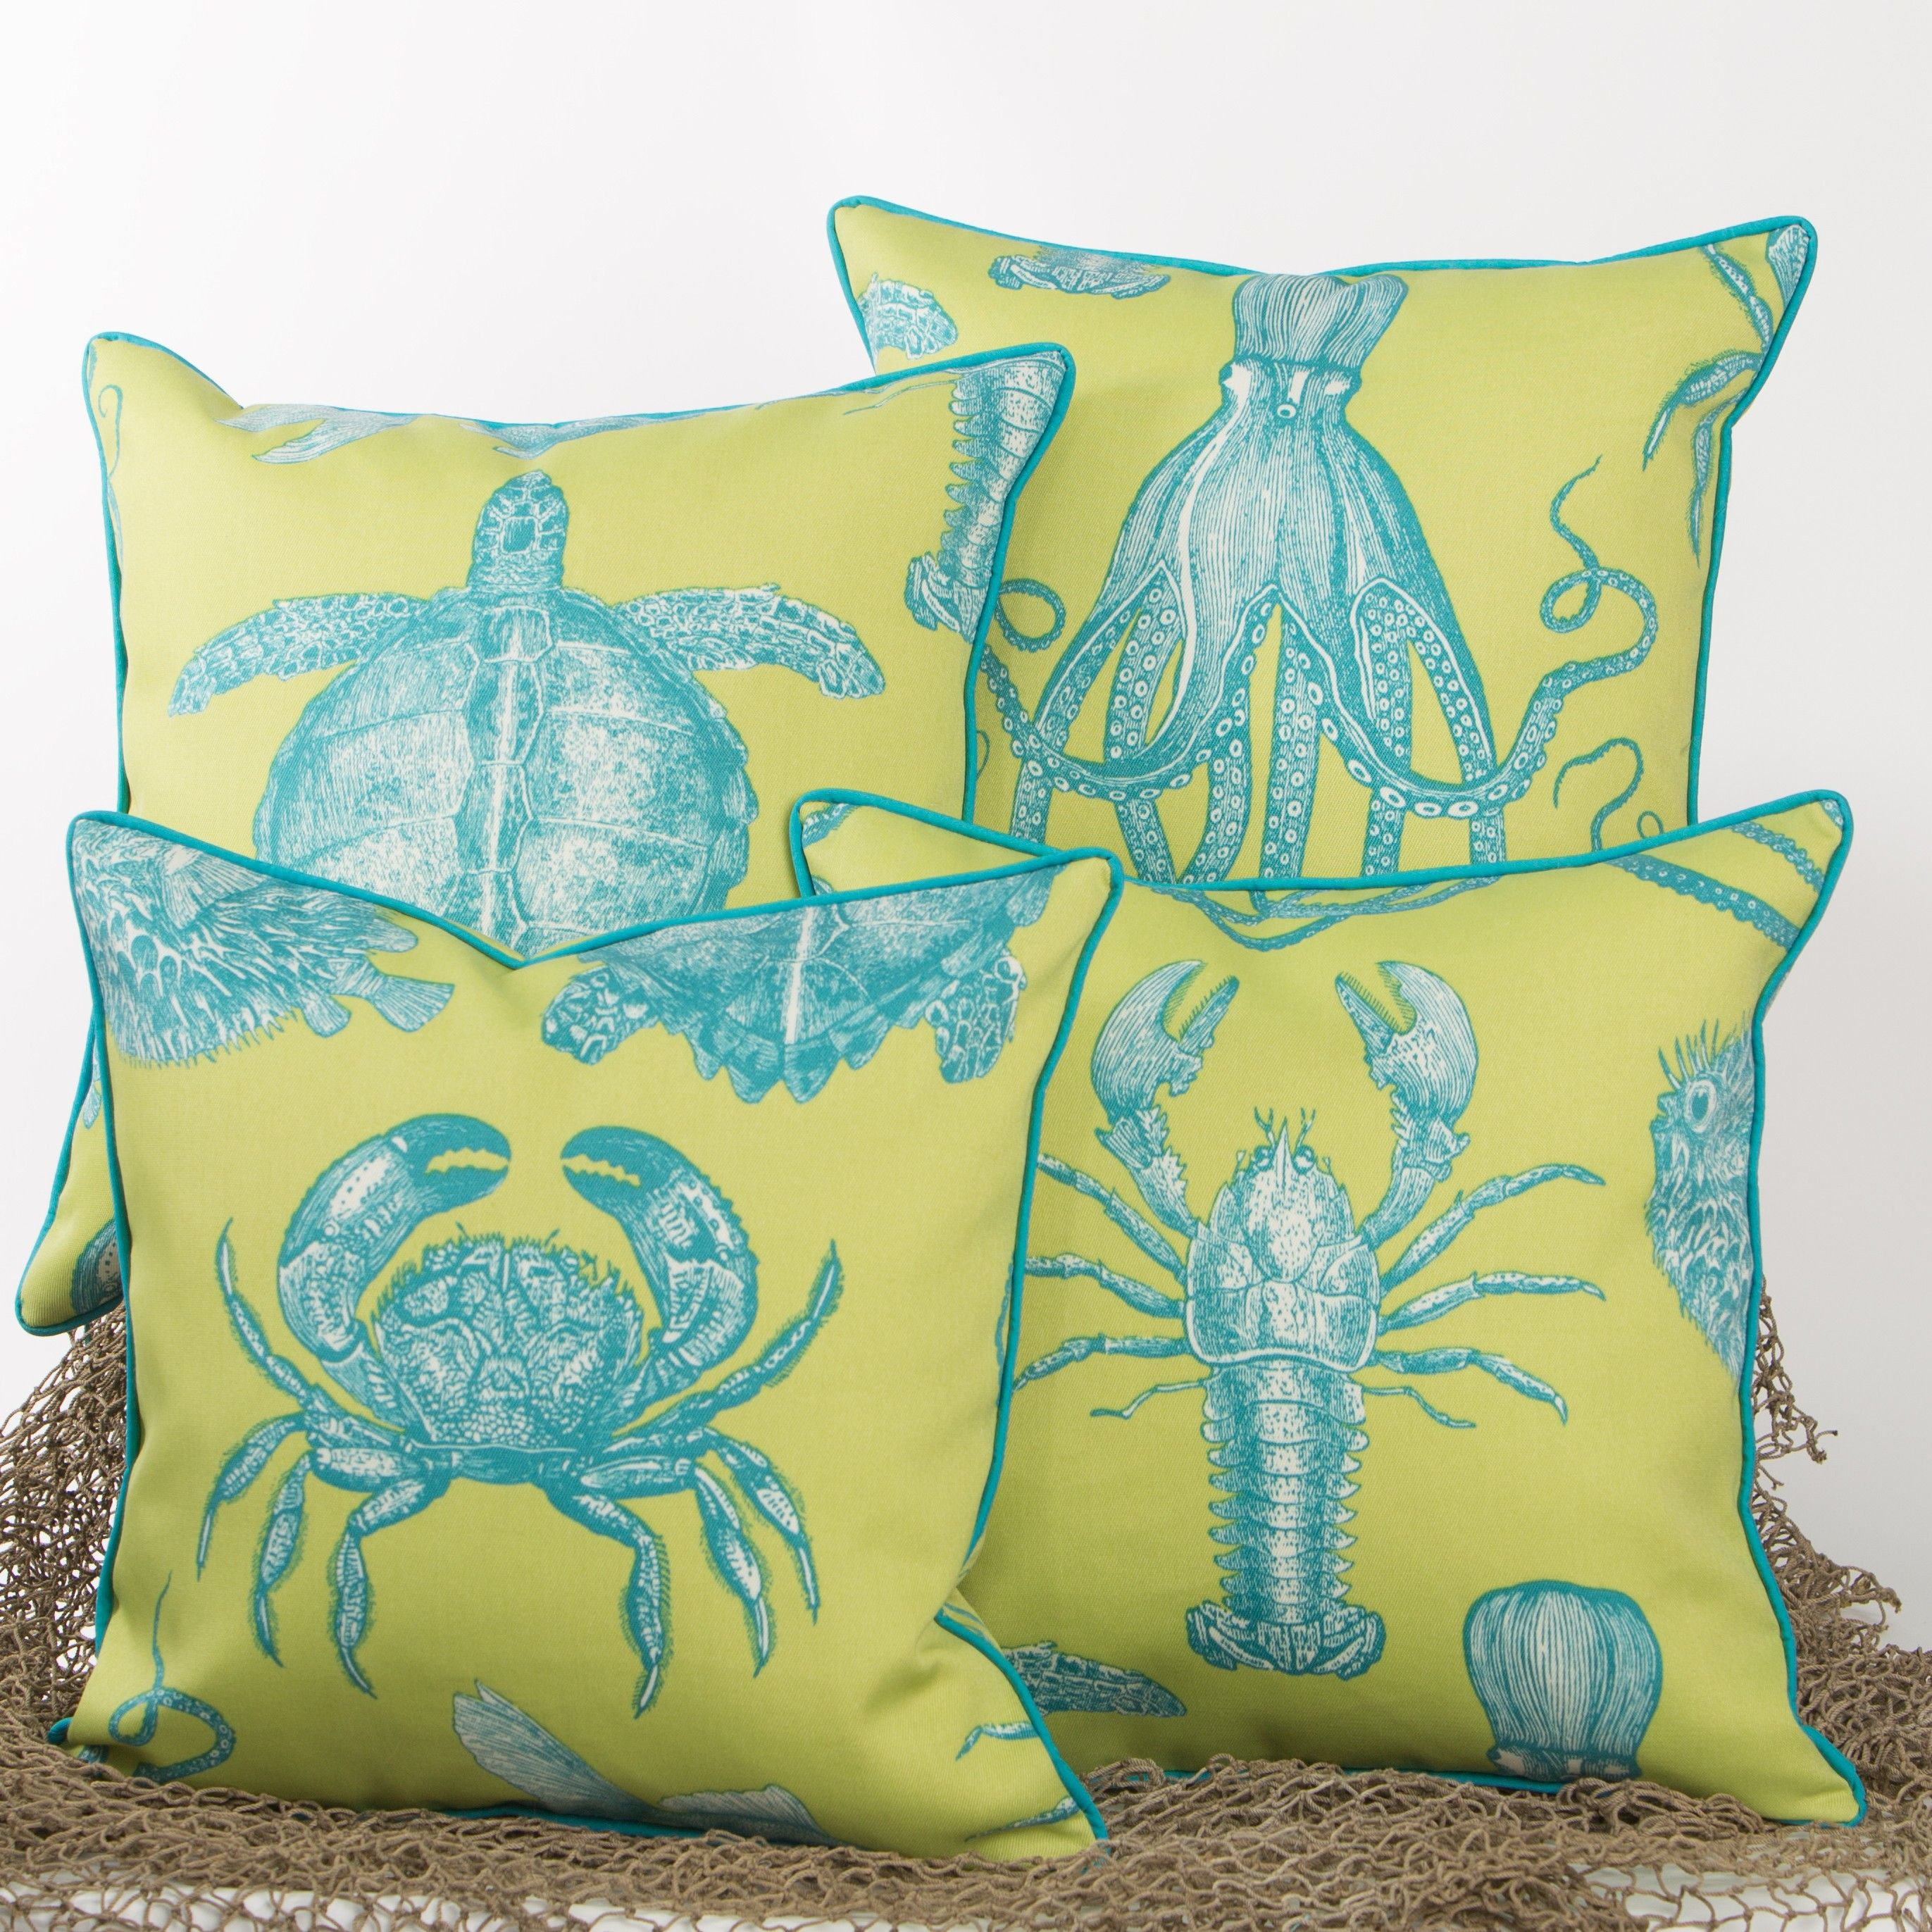 pinterest cushions pillows coastal on best decorative style collection n beach images pillow decor malibu